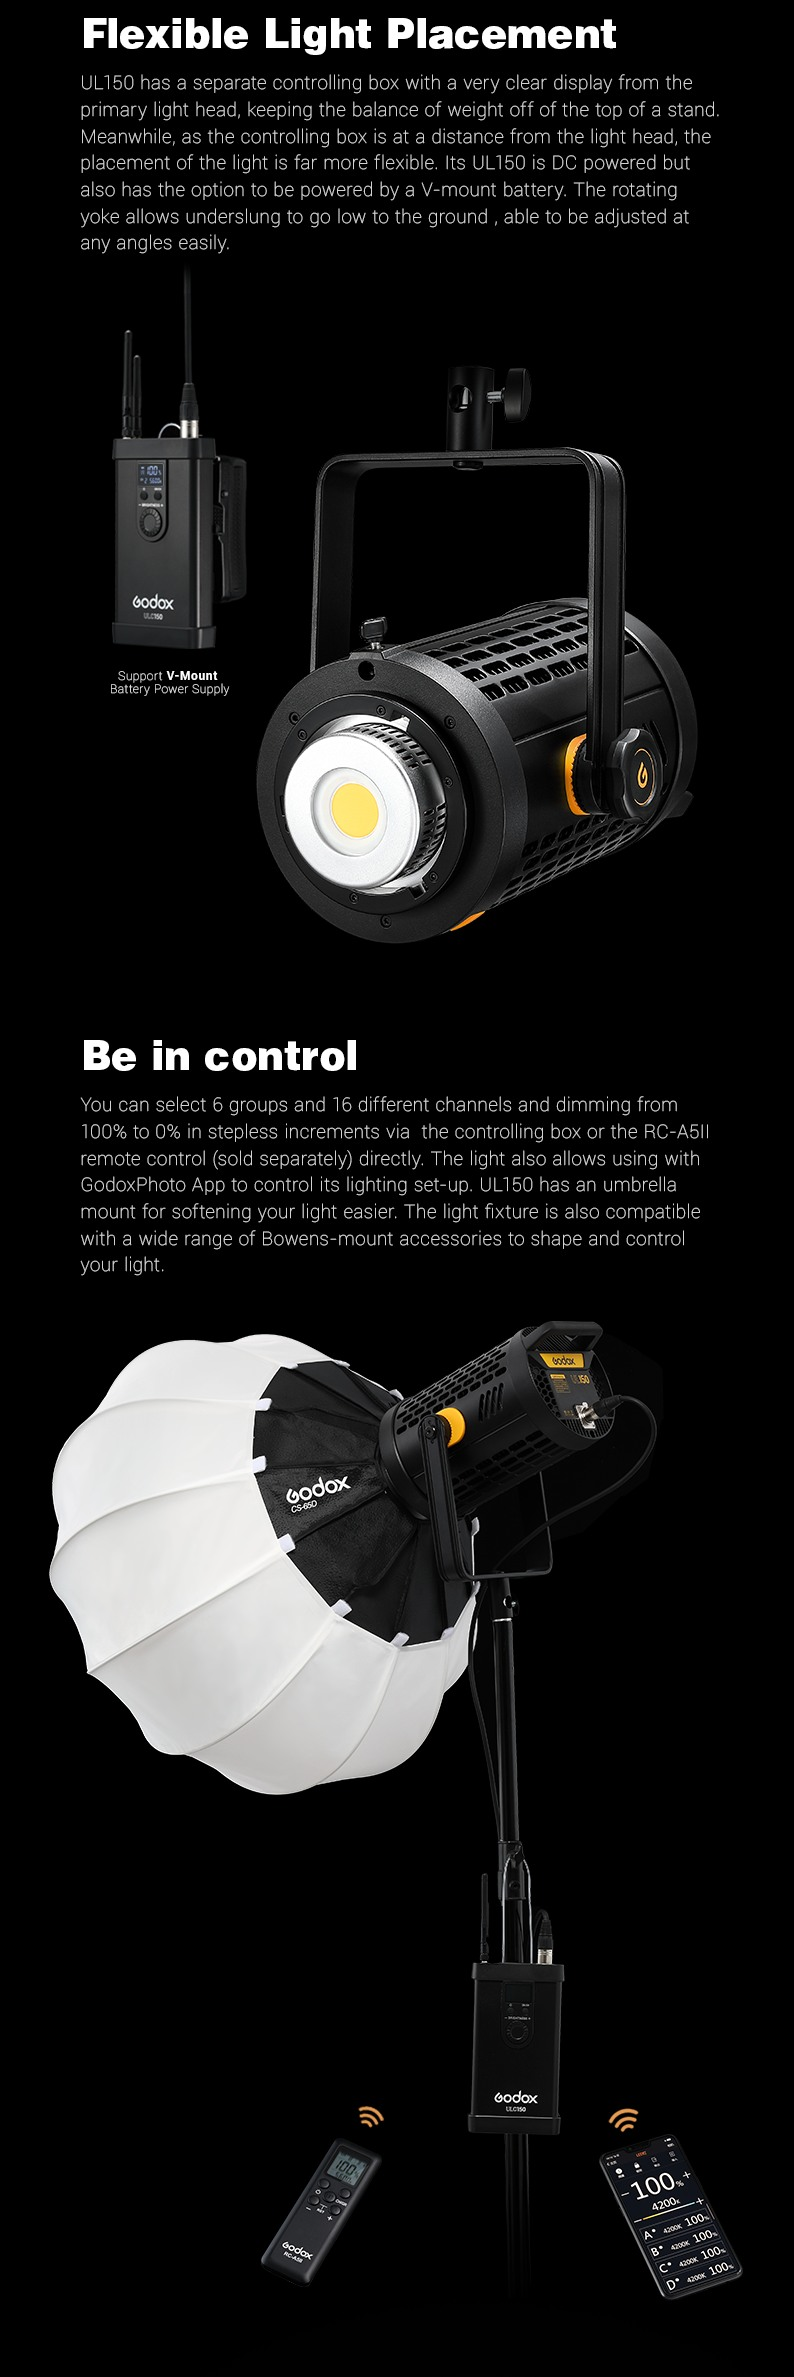 Godox UL-150 Flexible Light Placement. Be in control.